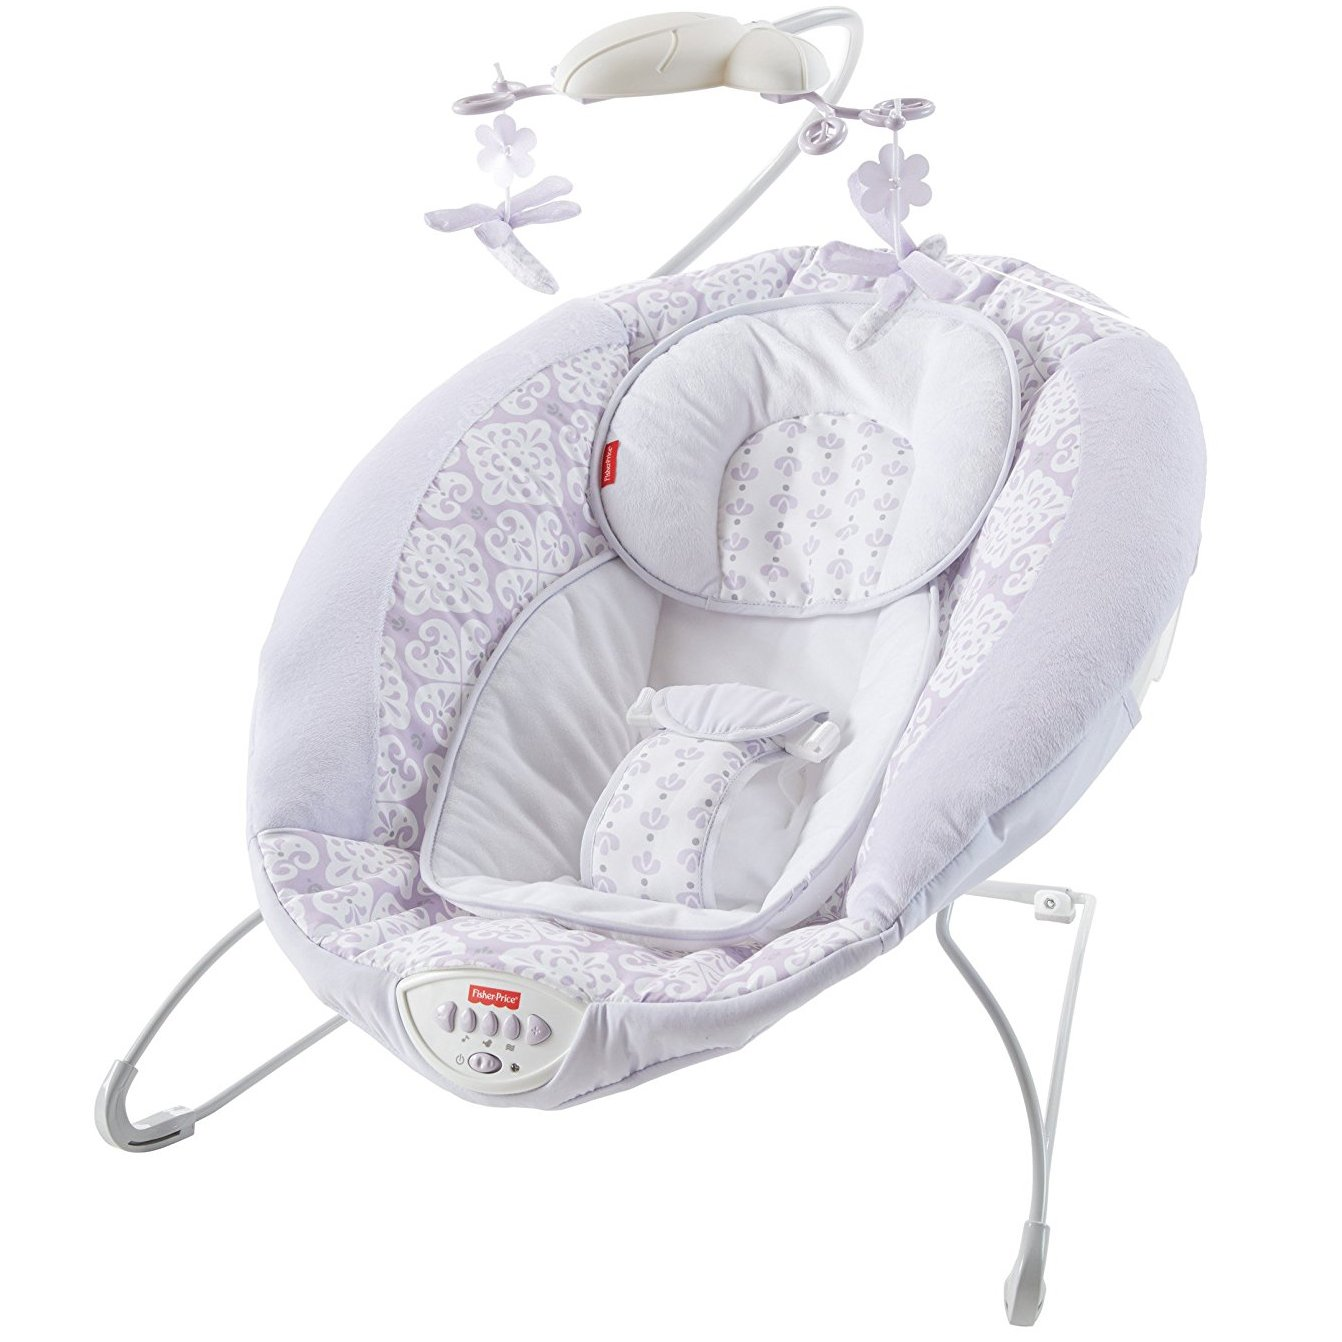 Fisher Price Bouncer >> Fisher Price Fairytale Newborn Deluxe Bouncer with Baby Mobile, Lavender DPW08   eBay